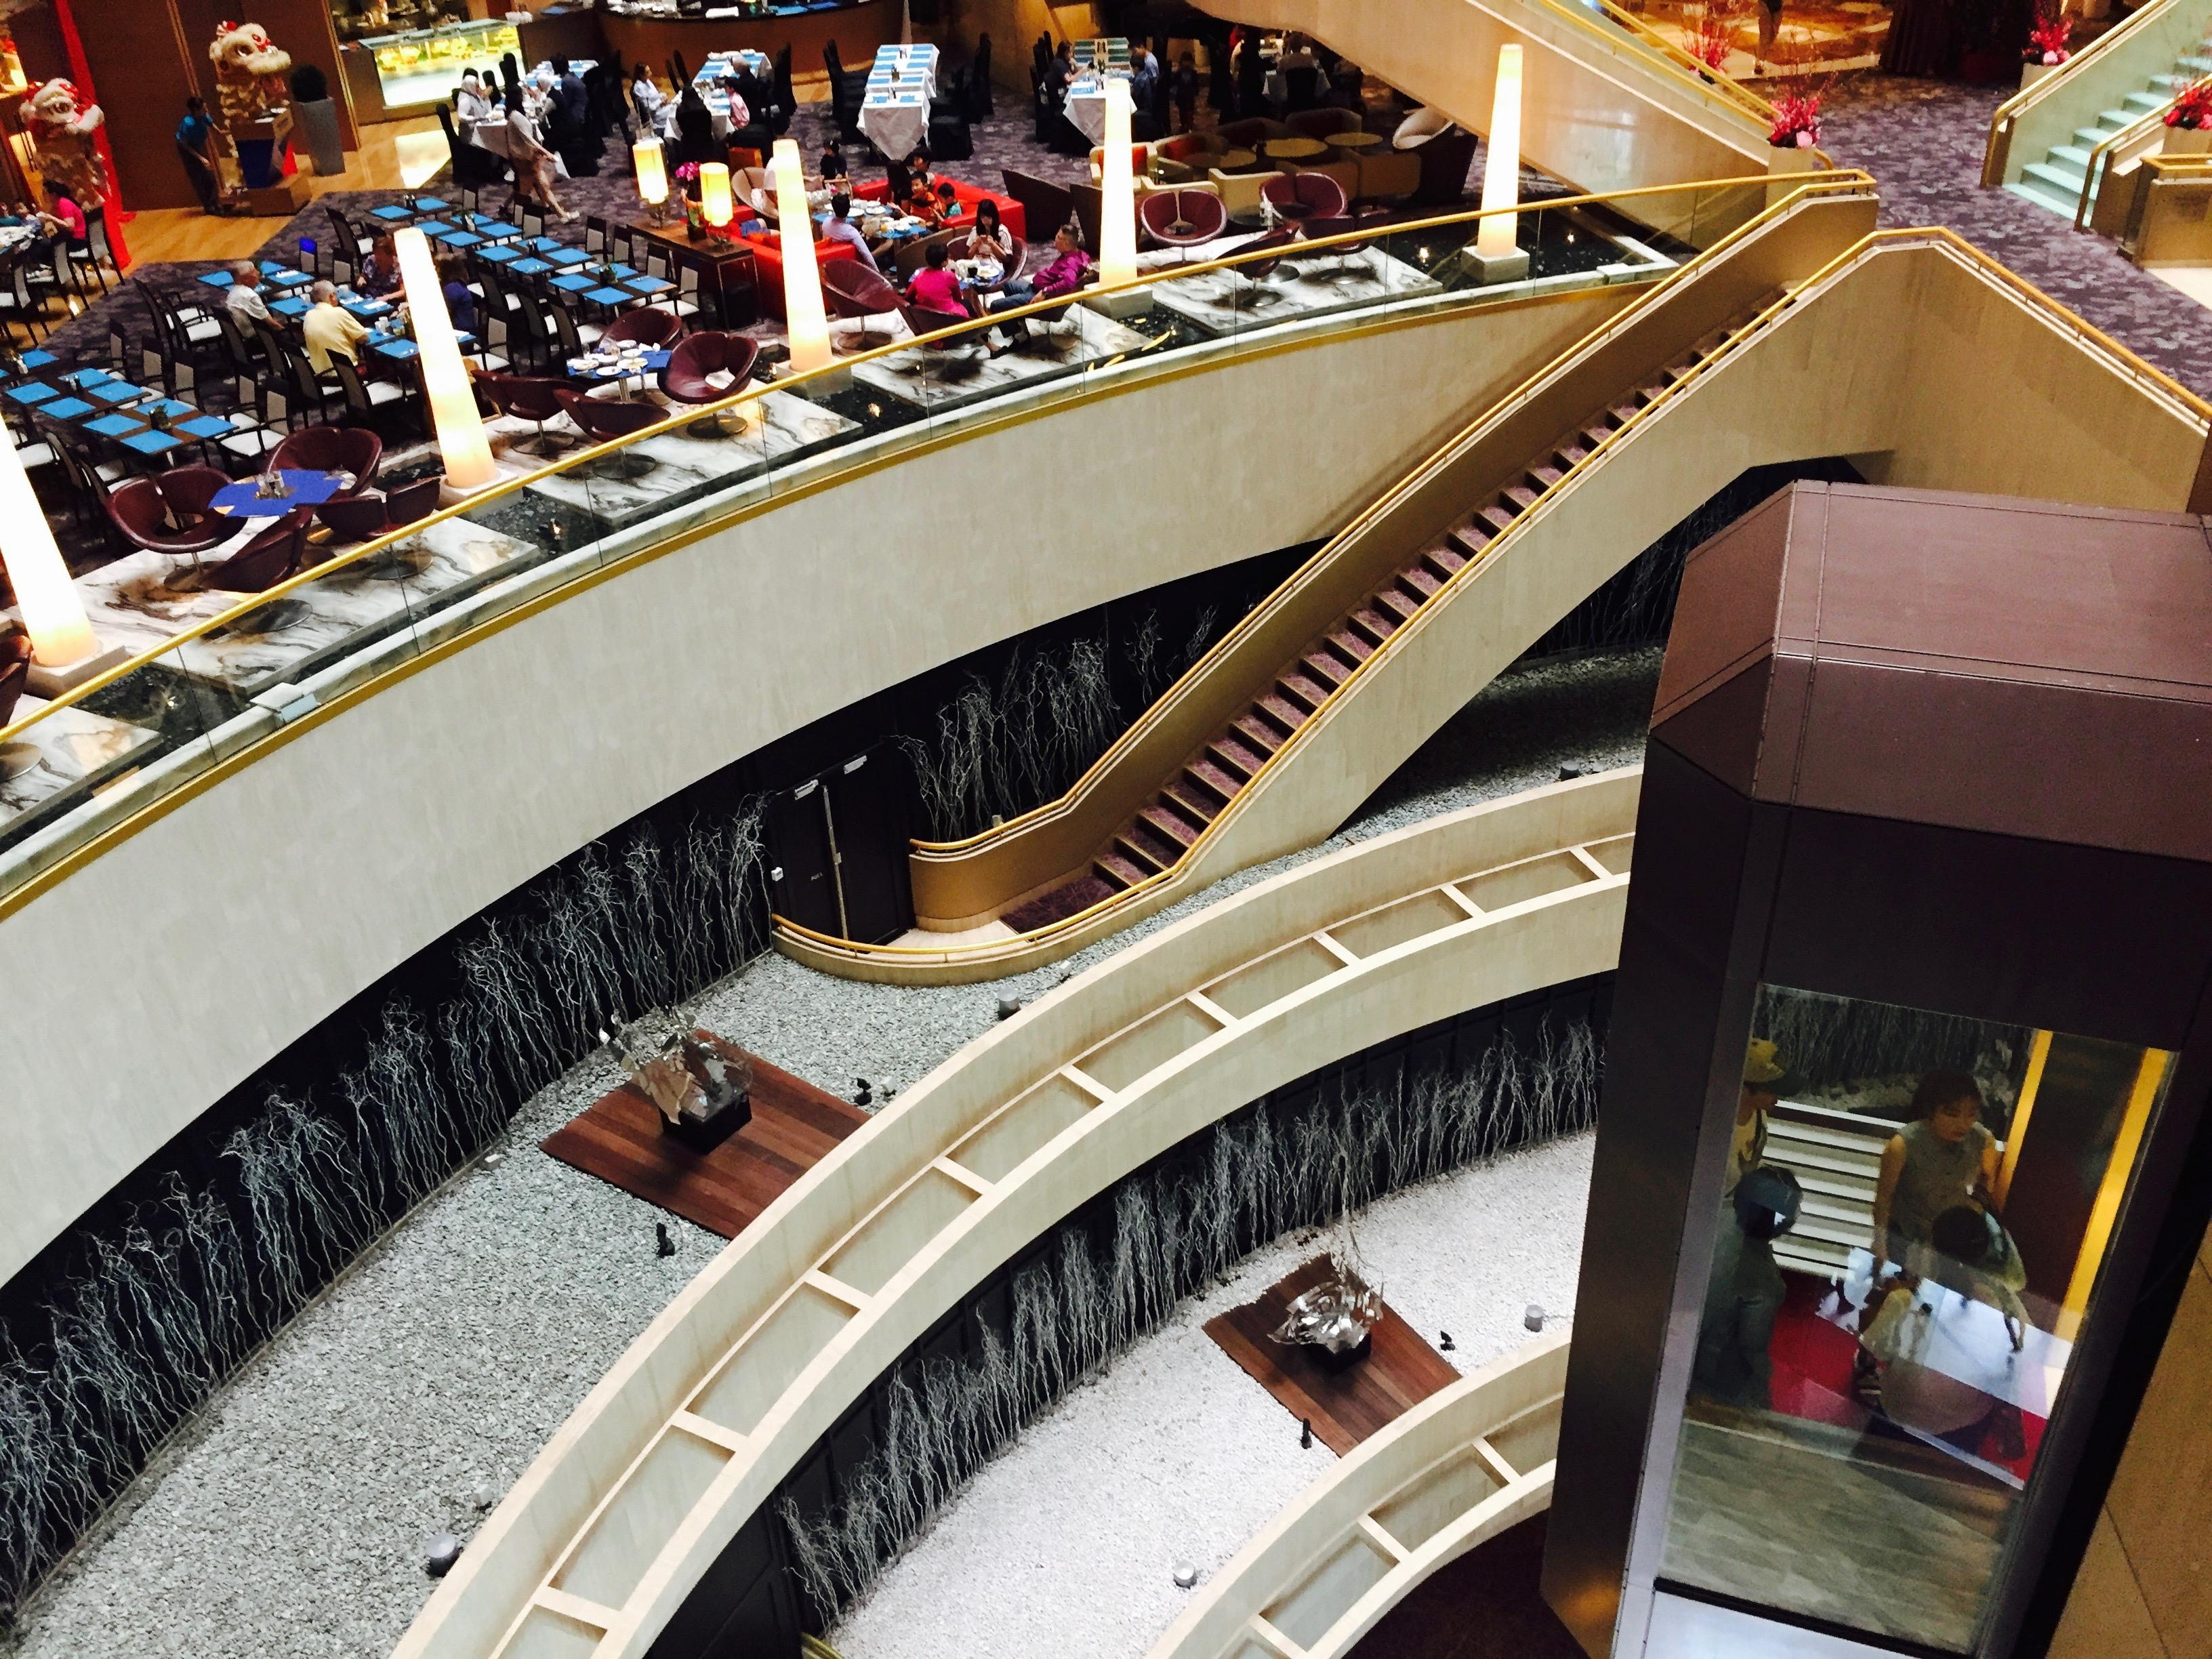 Stair to Marina Mall